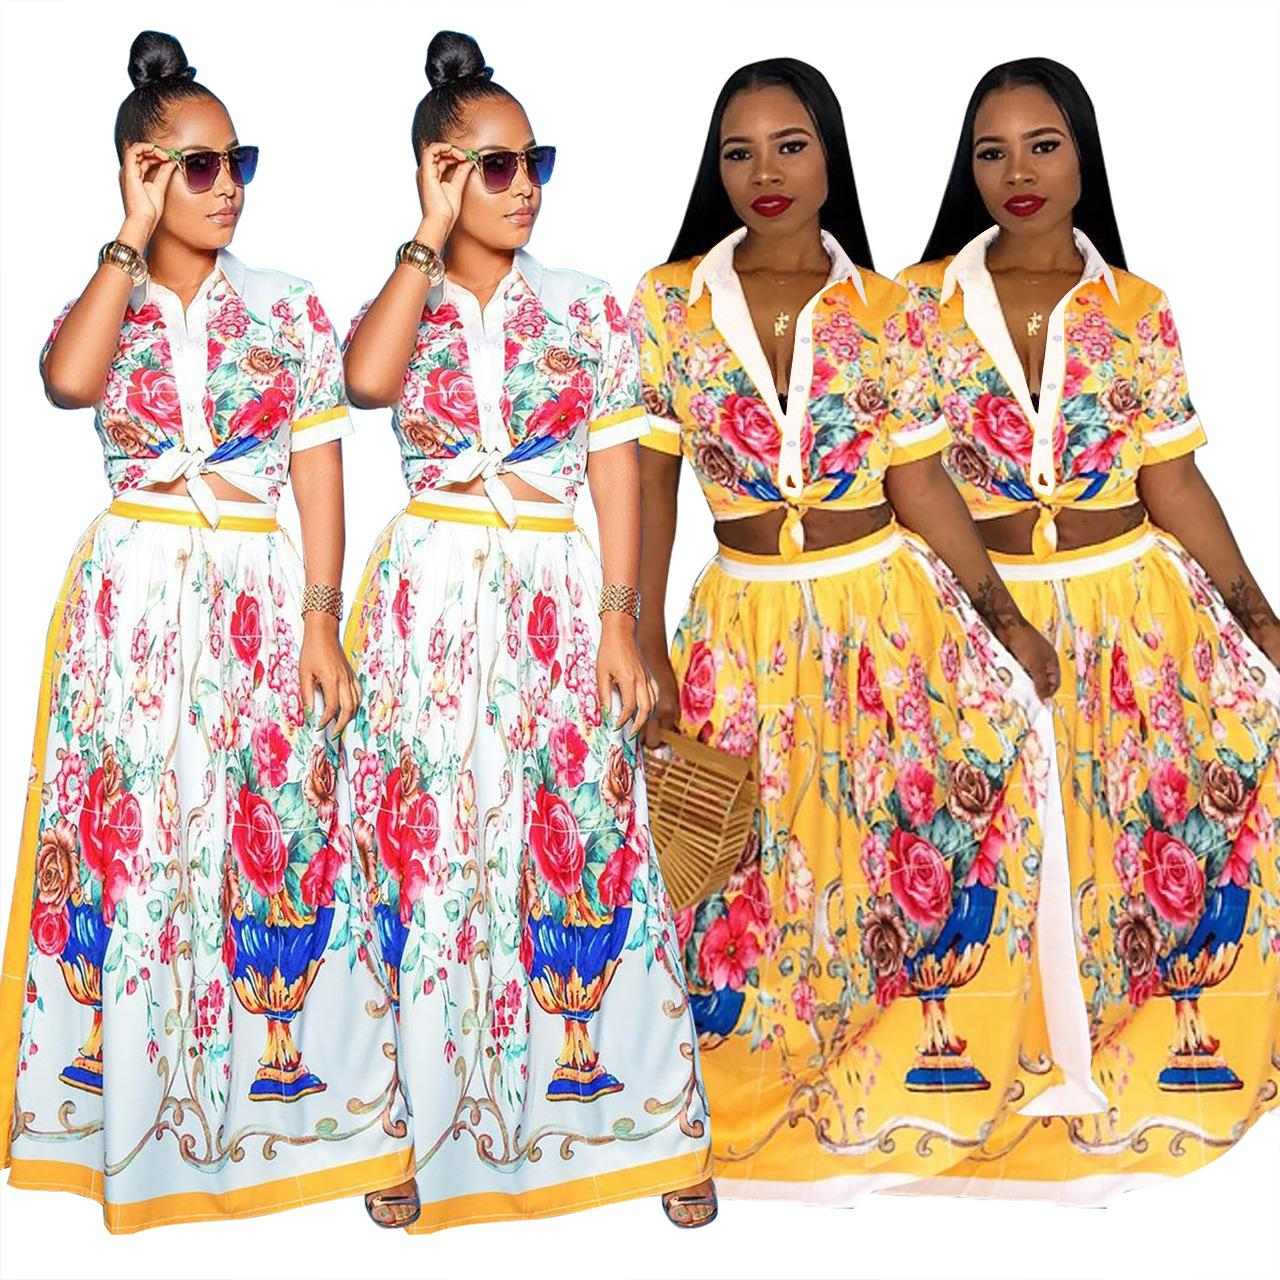 30ced4e576f 2019 Crop Top And Skirt Set Floral Two Piece Maxi Skirt Set F0215 Women  Clothing Matching Sets With Skirt From Sarmit